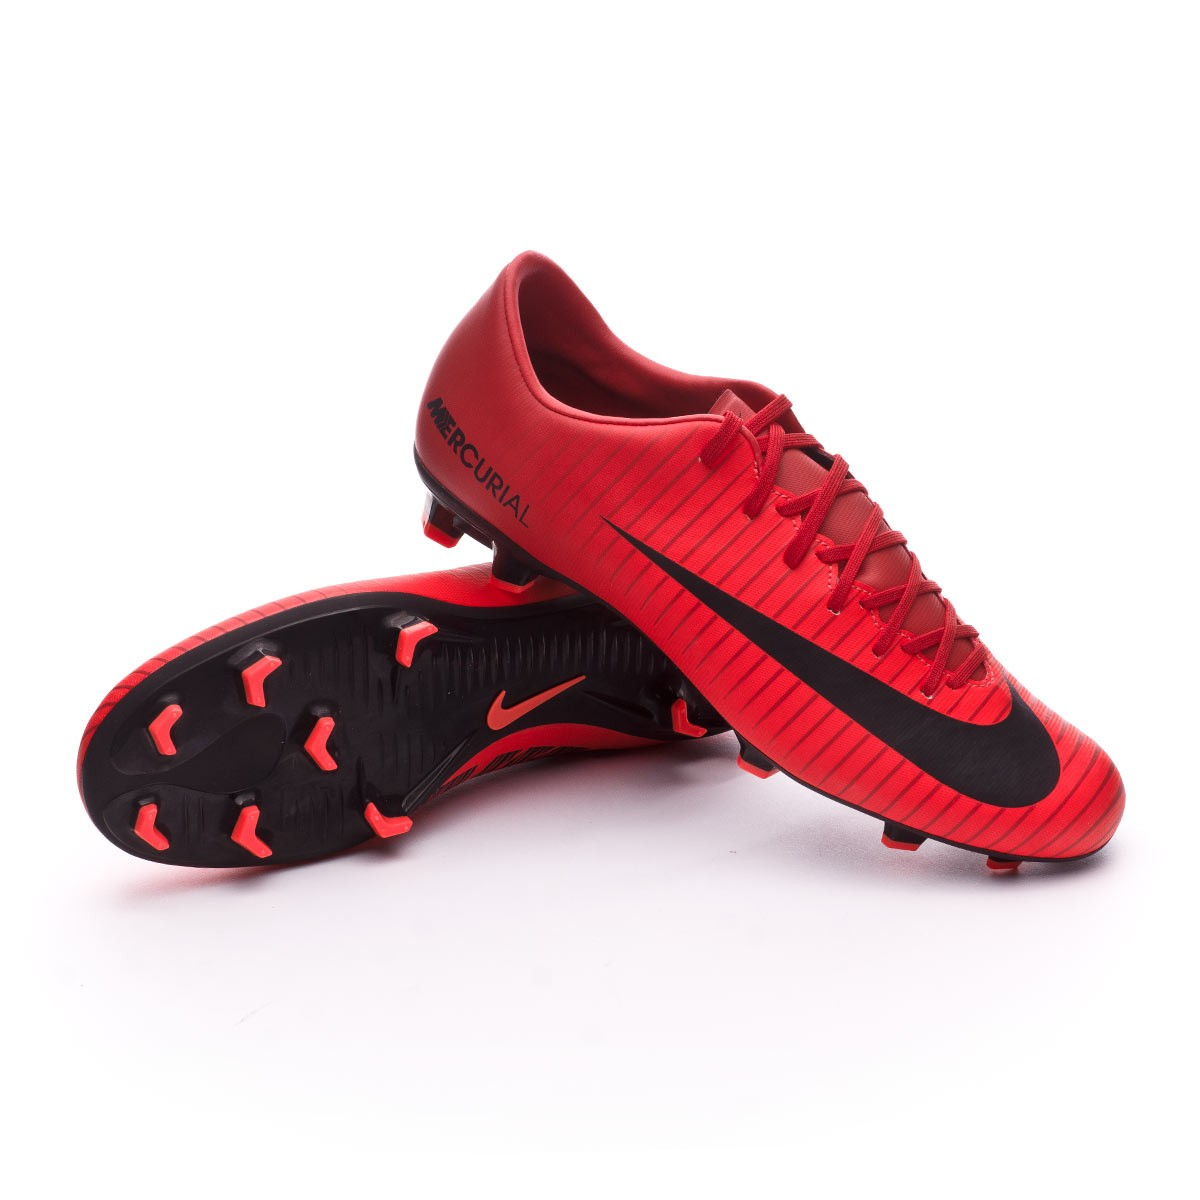 Boot Nike Mercurial Victory VI FG University red-Black-Bright ... 97a578eeb1